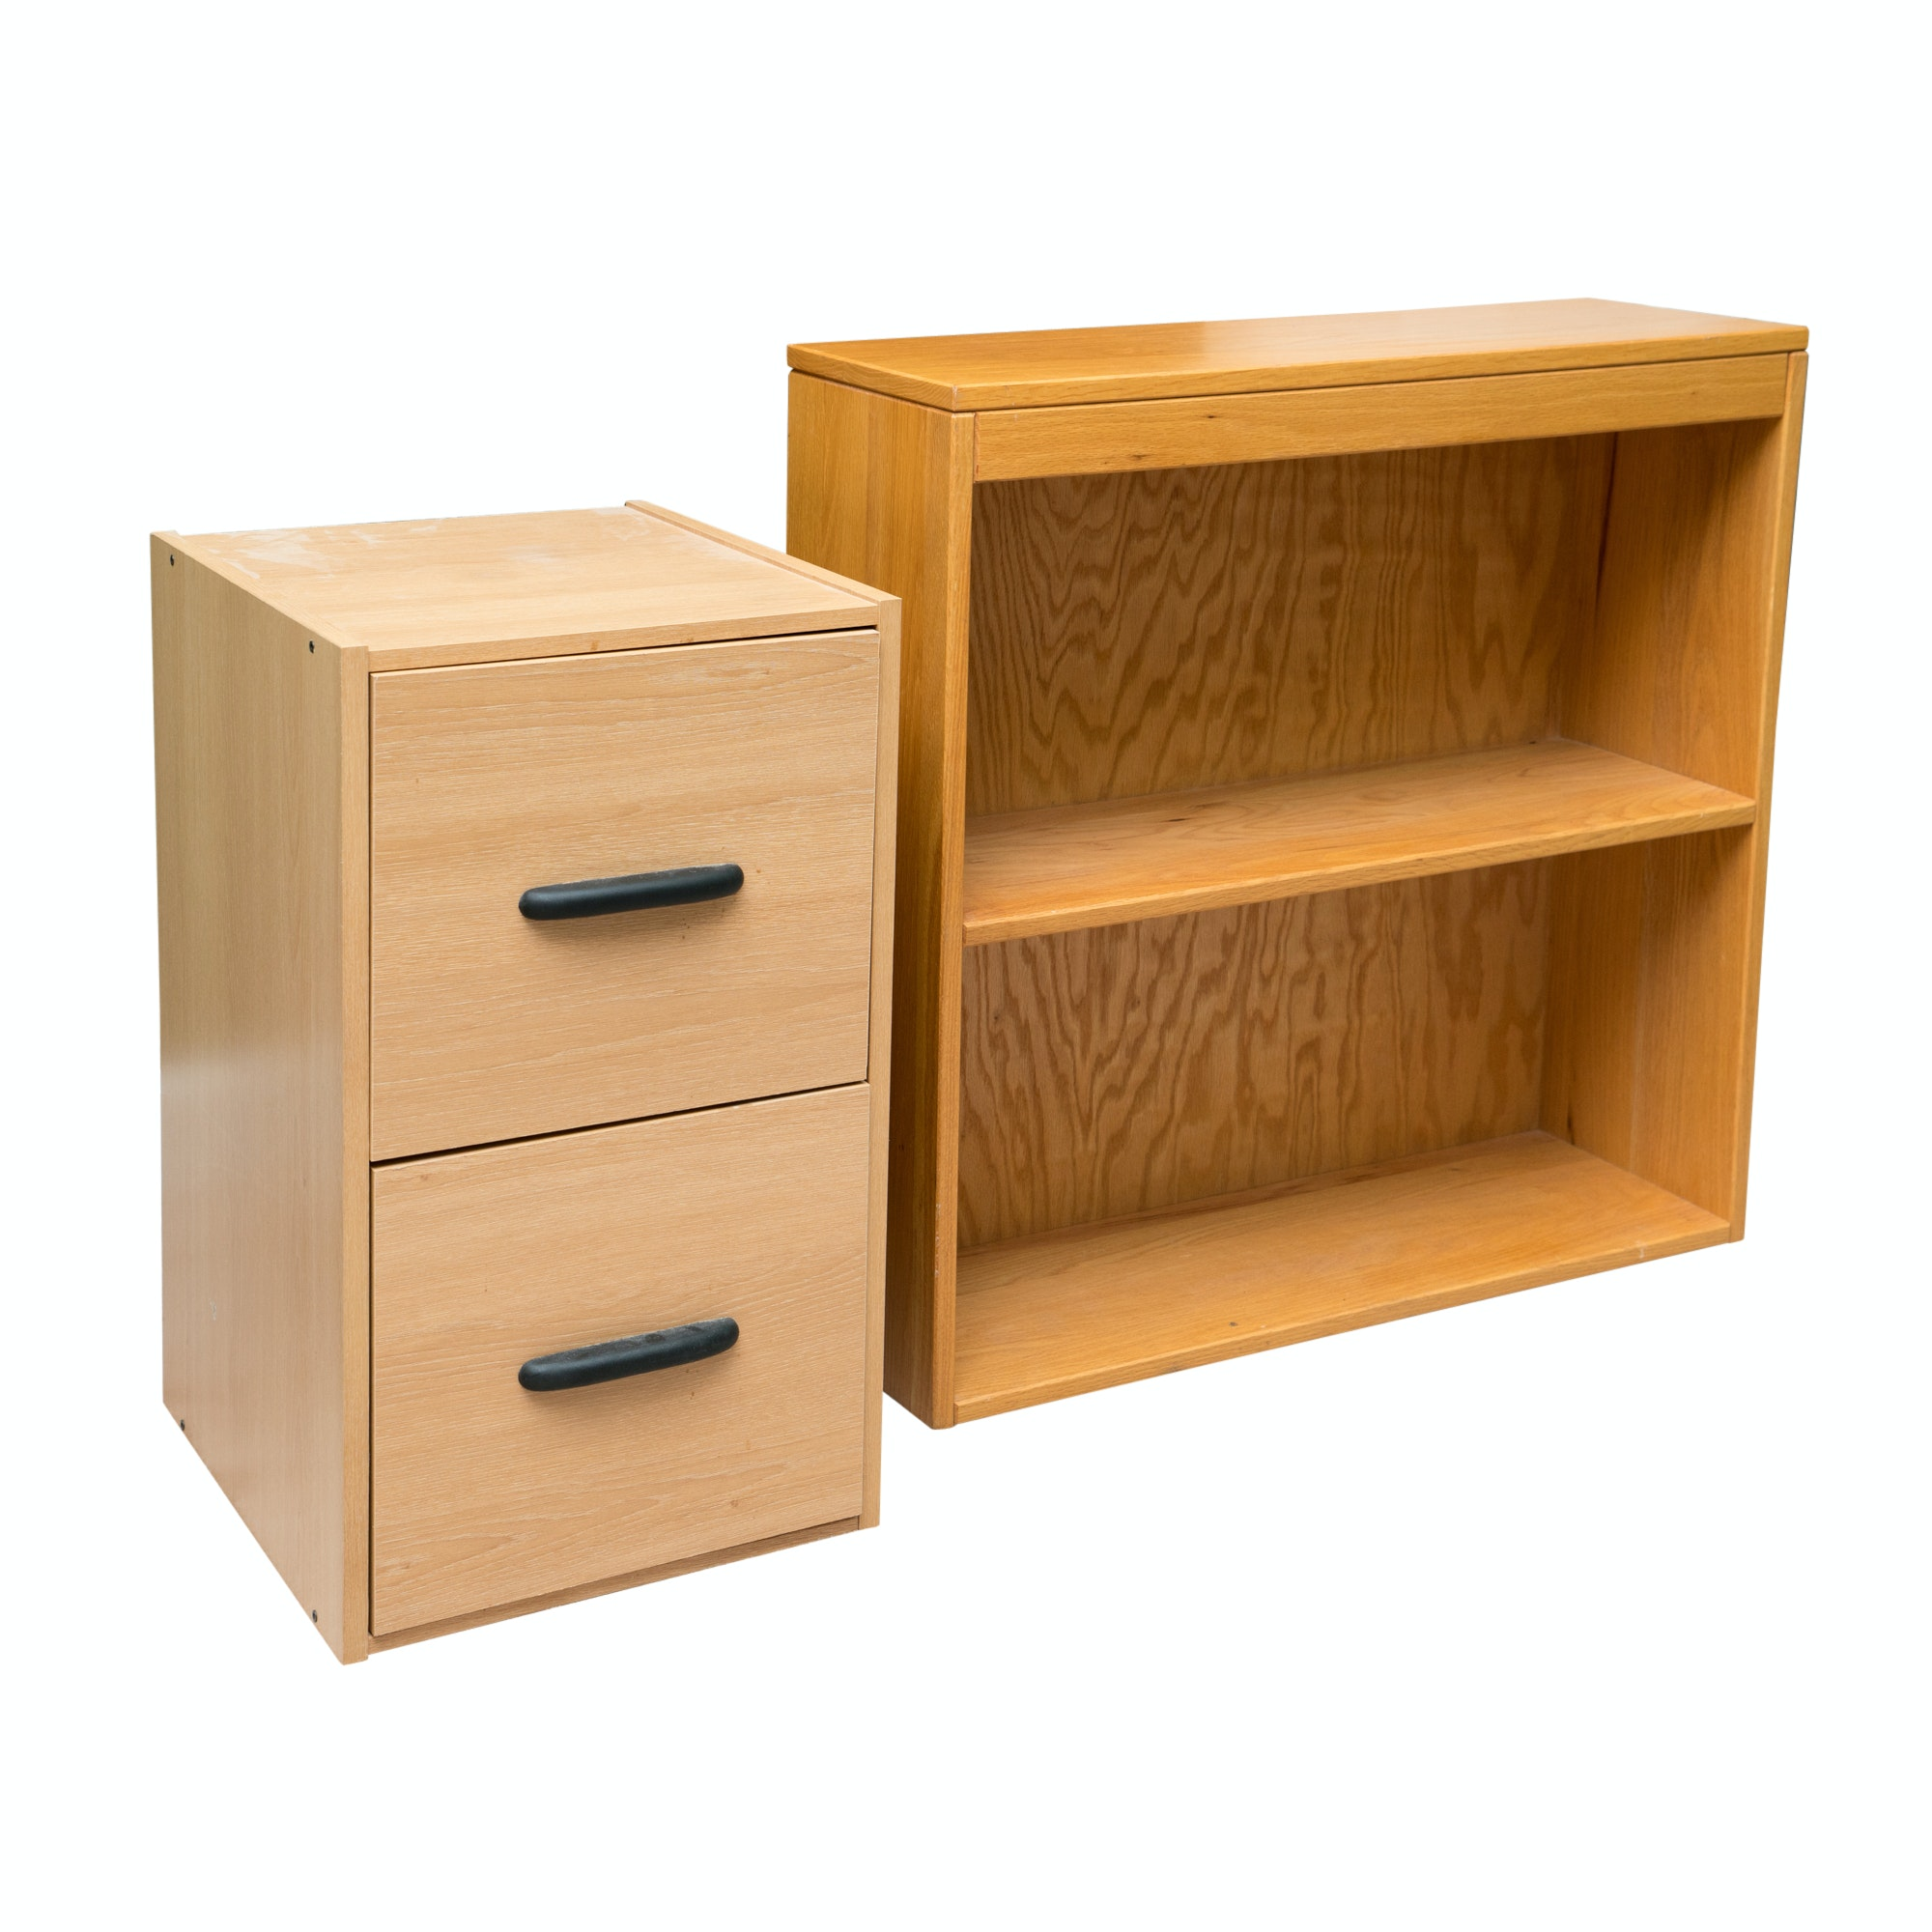 Marvelous Oak Bookcase By Adden Furniture With Two Drawer File Cabinet ...